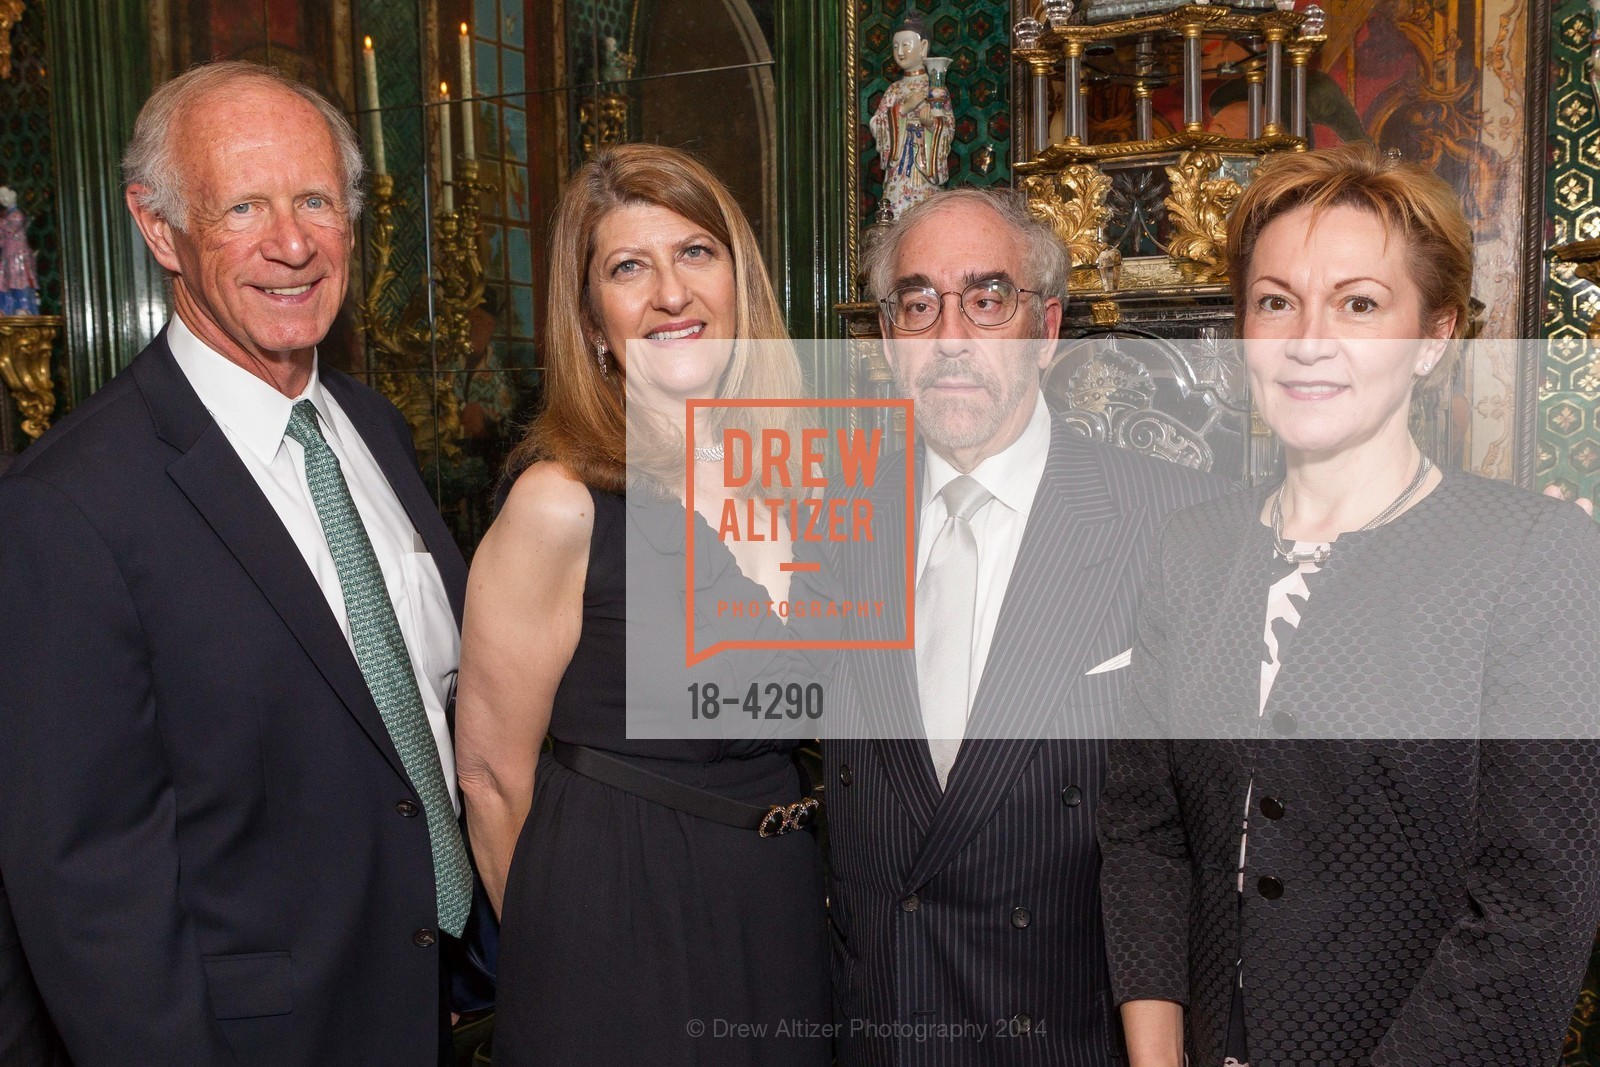 John Gambs, Emely Weissman, Ron Weissman, Beatrice Gomory, Photo #18-4290